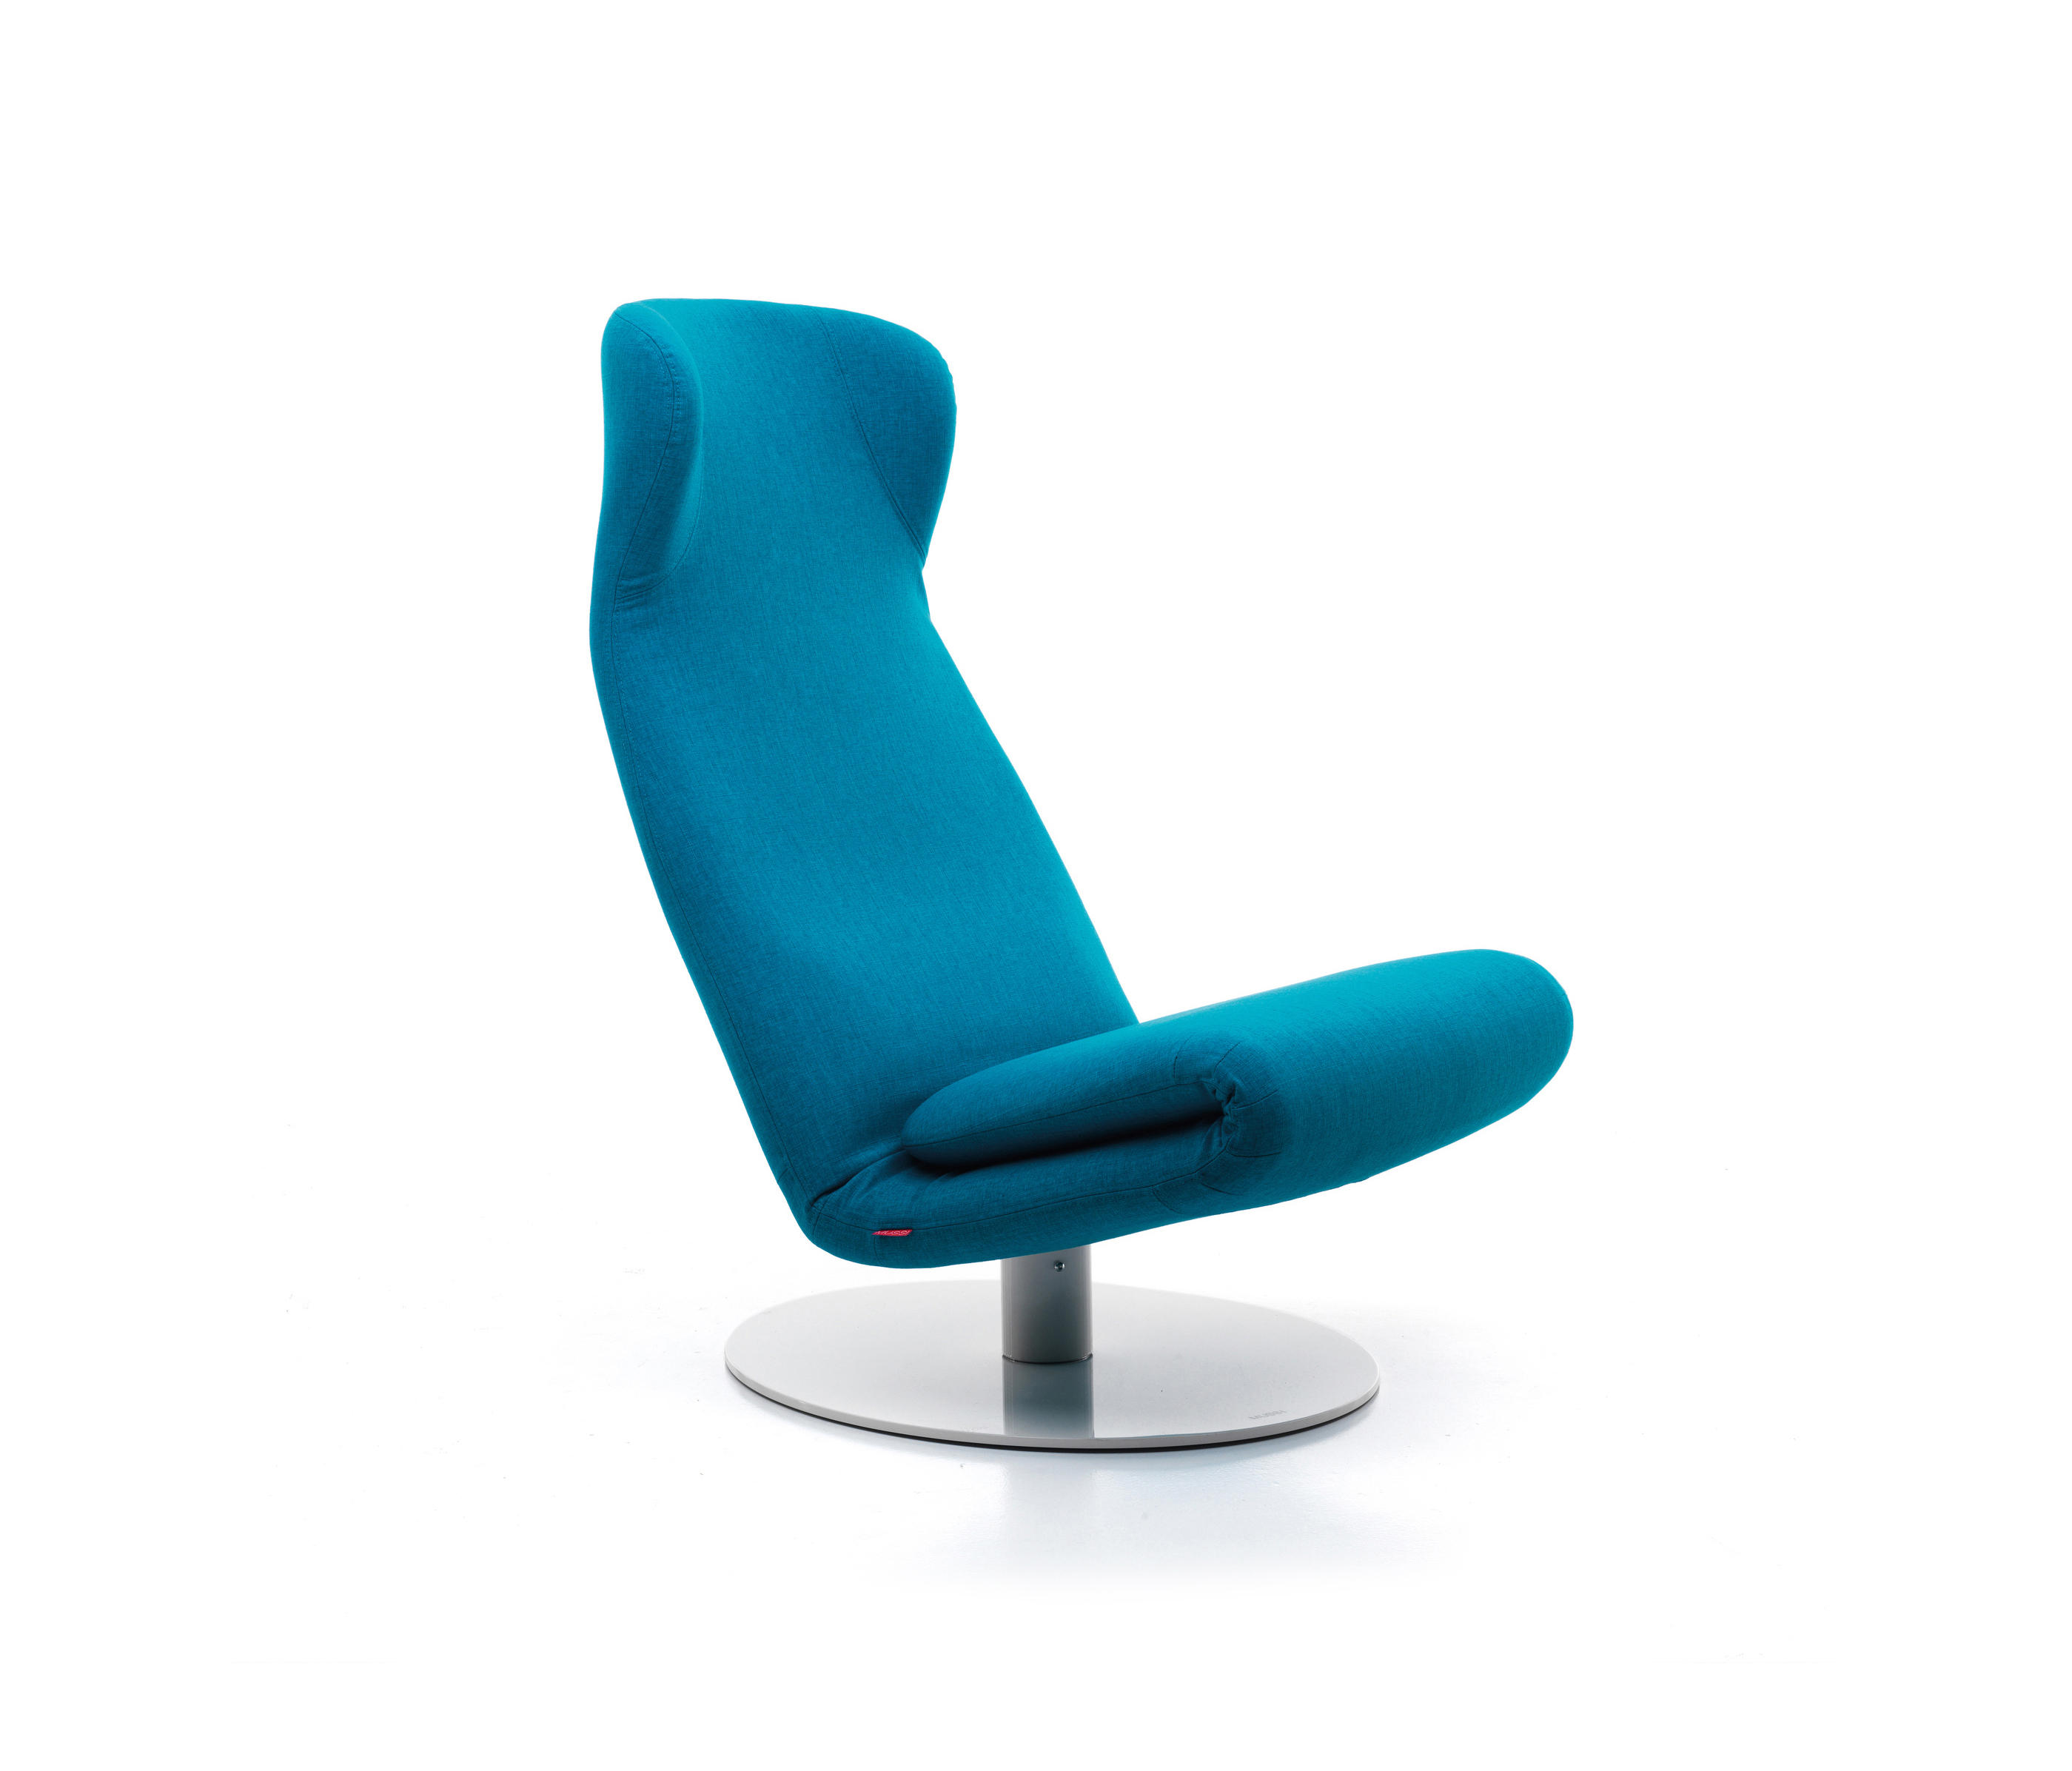 KANGURA | ARMCHAIR/CHAISELONGUE - Chaise longues from Mussi Italy ...